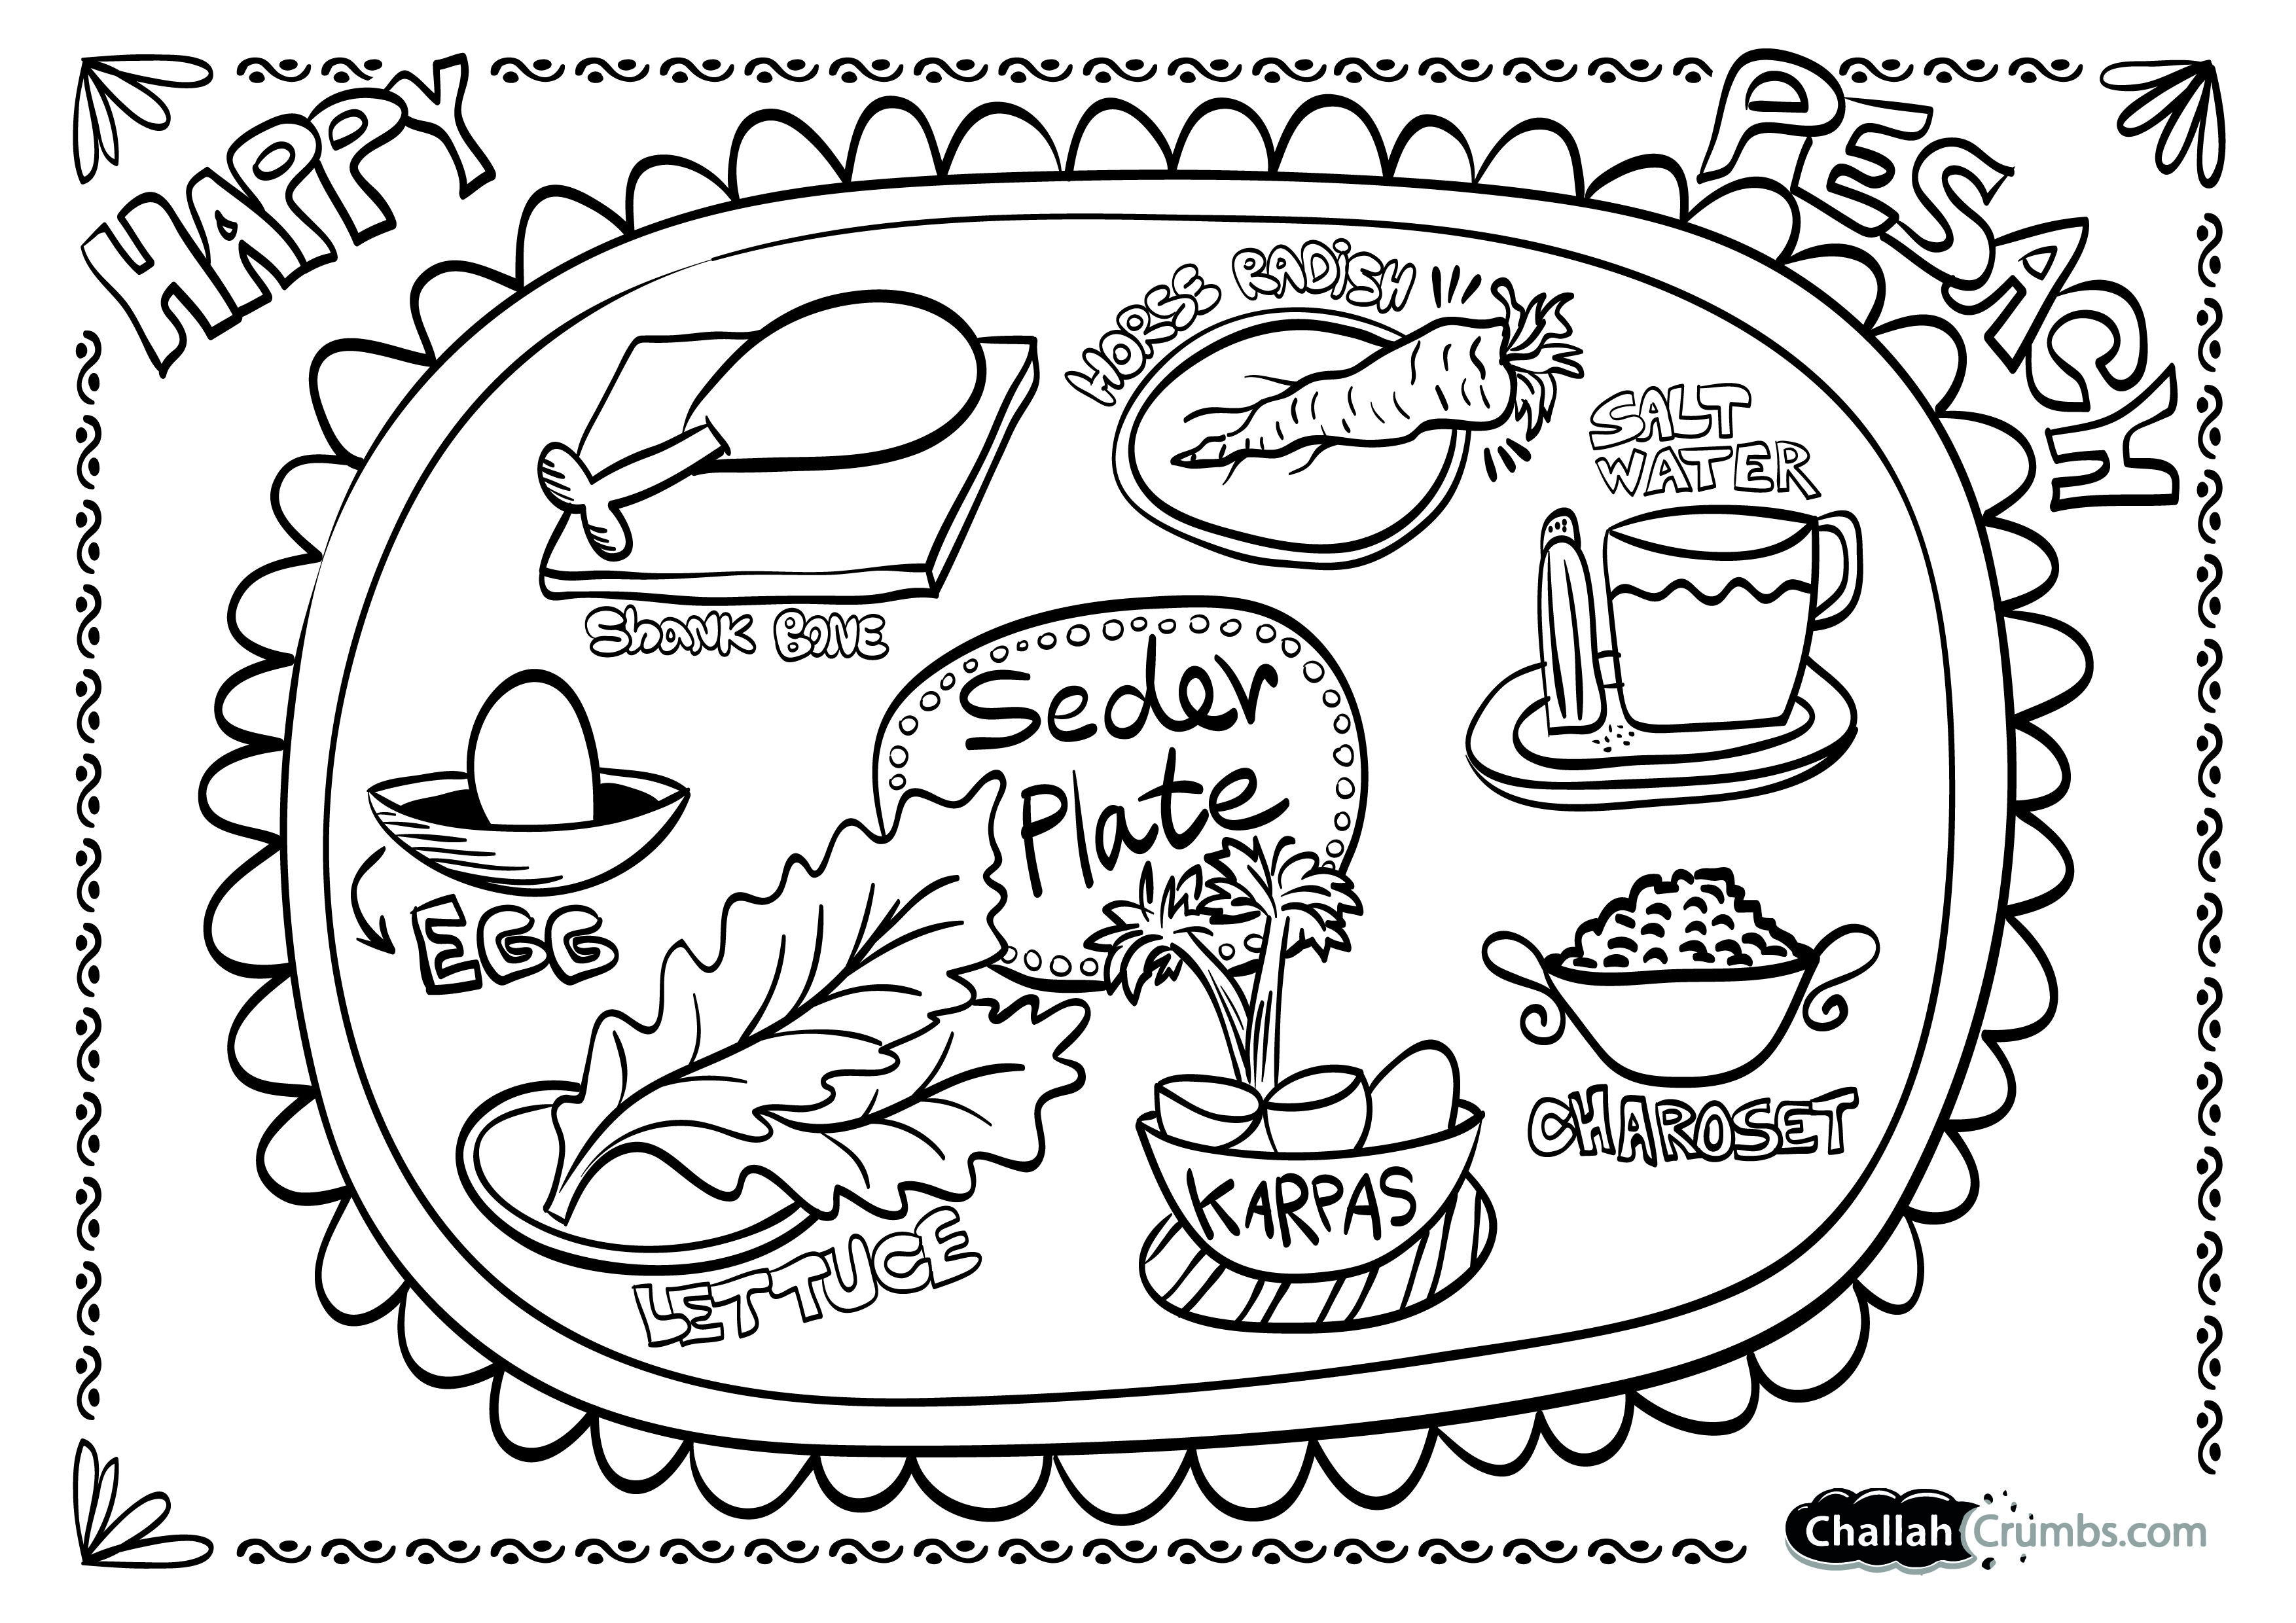 Coloring Page Seder Plate Challah Crumbs Passover Craft